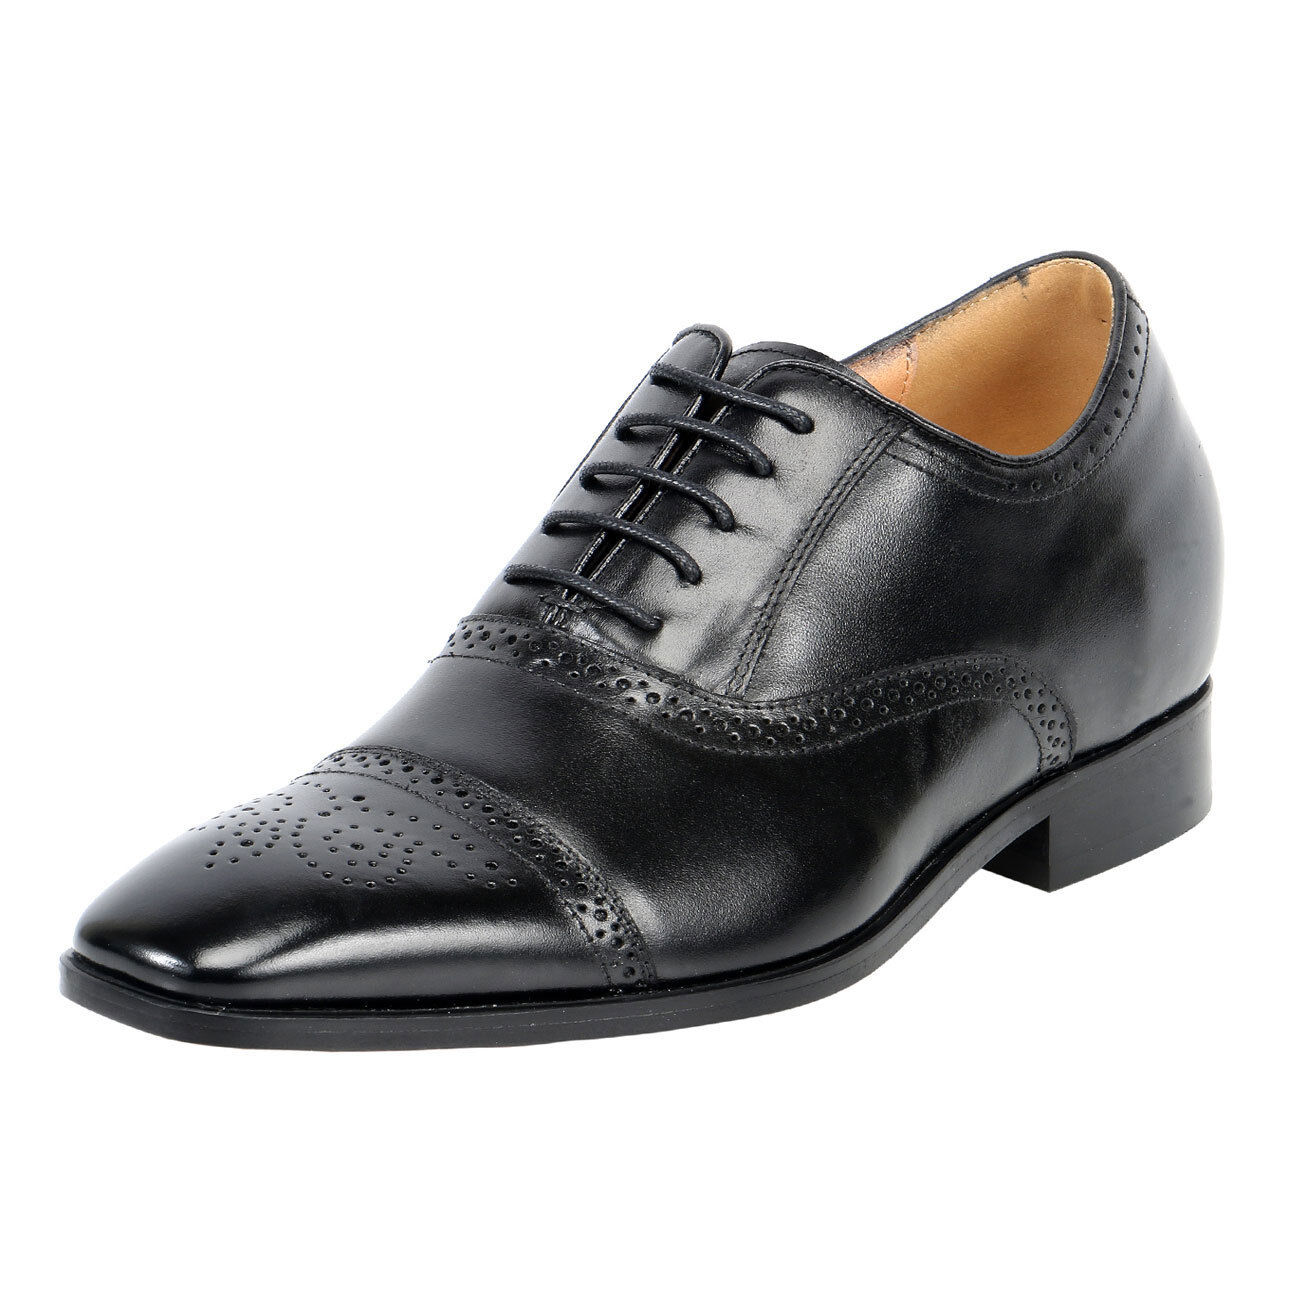 Uomo Leather Height Heels Formal Dress Shoes-2.8